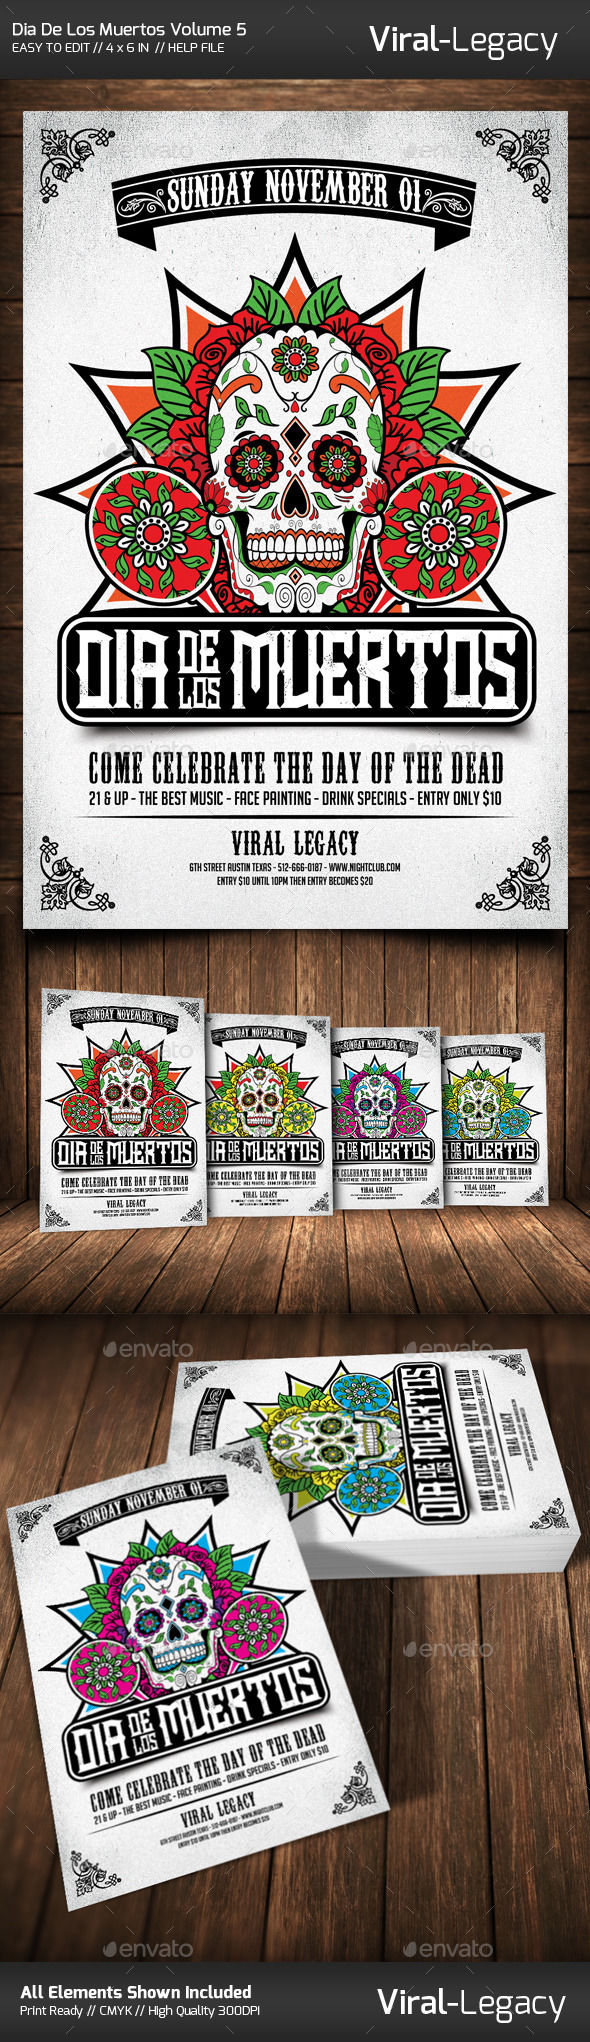 Dia De Los Muertos Volume by Viral-Legacy (Halloween party flyer)